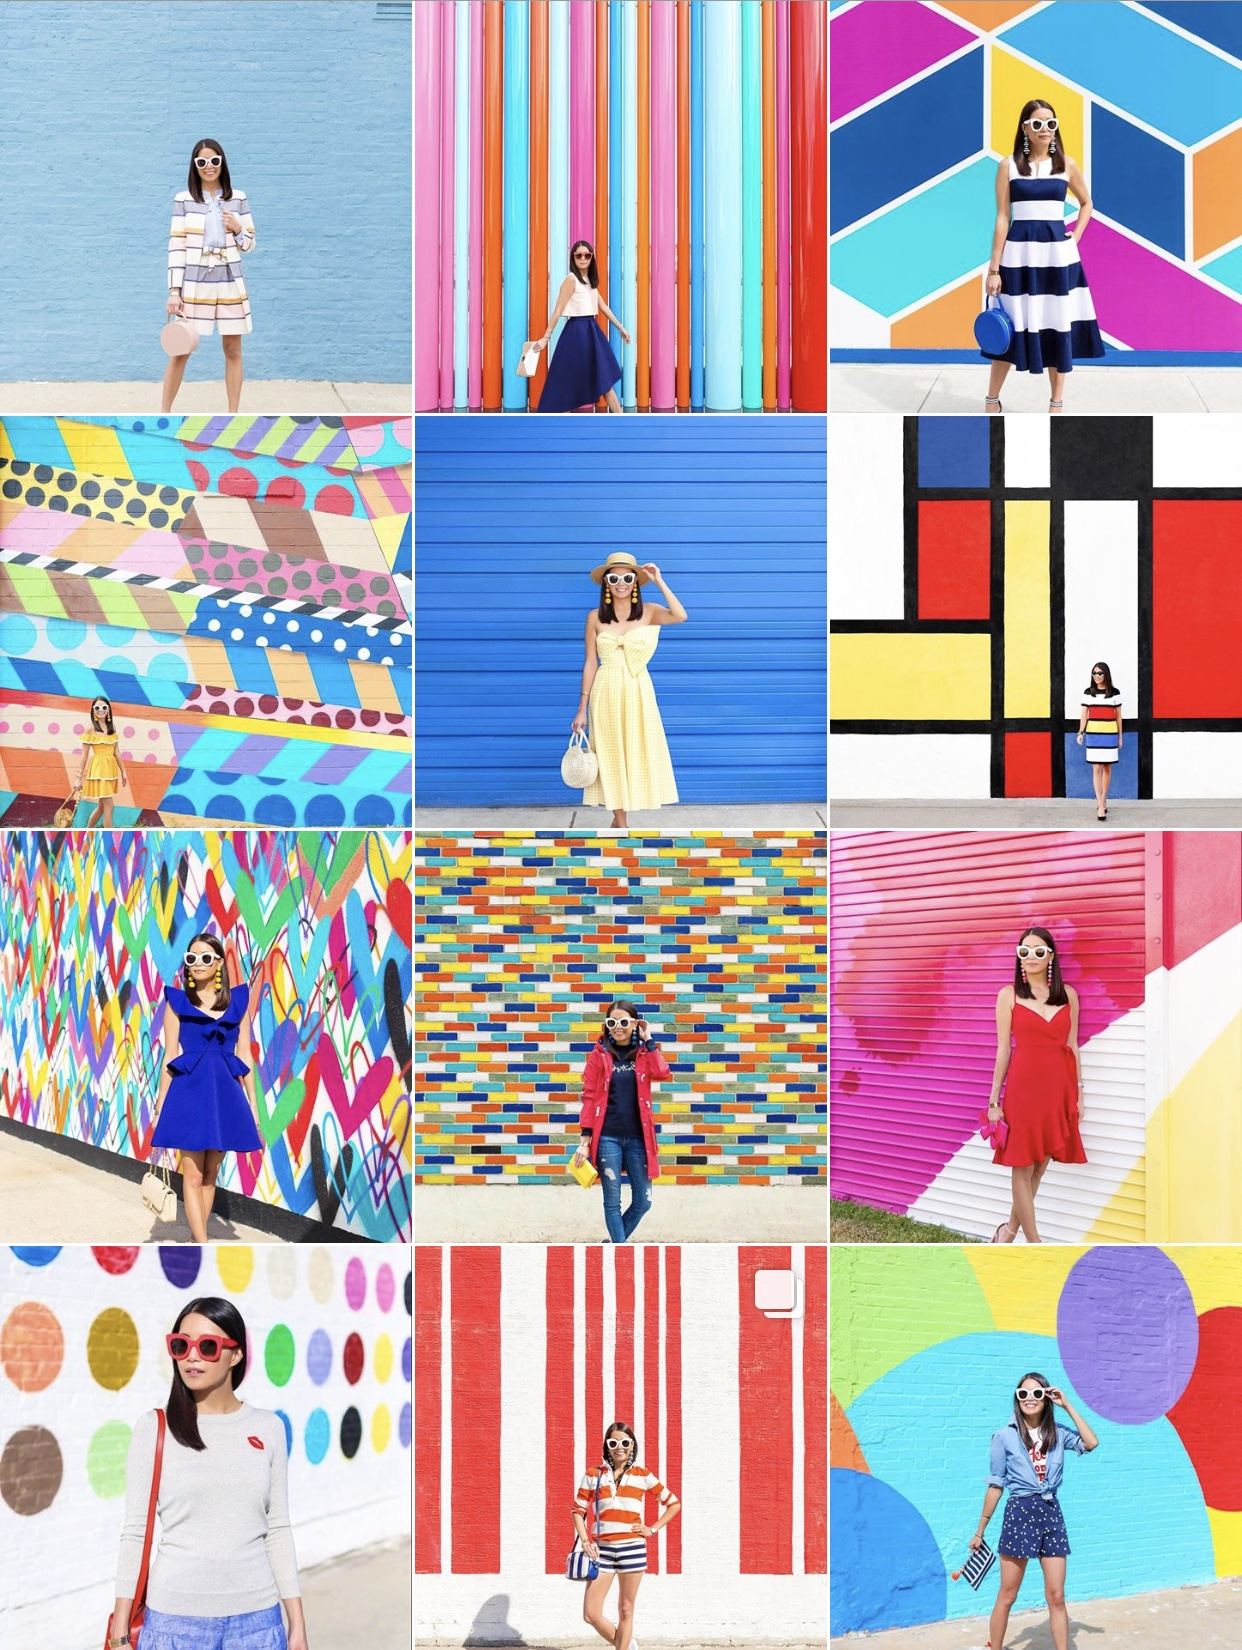 Instagram:  Rosie Clayton   - I LOVE Rosie's feed, and all her colorful walls!